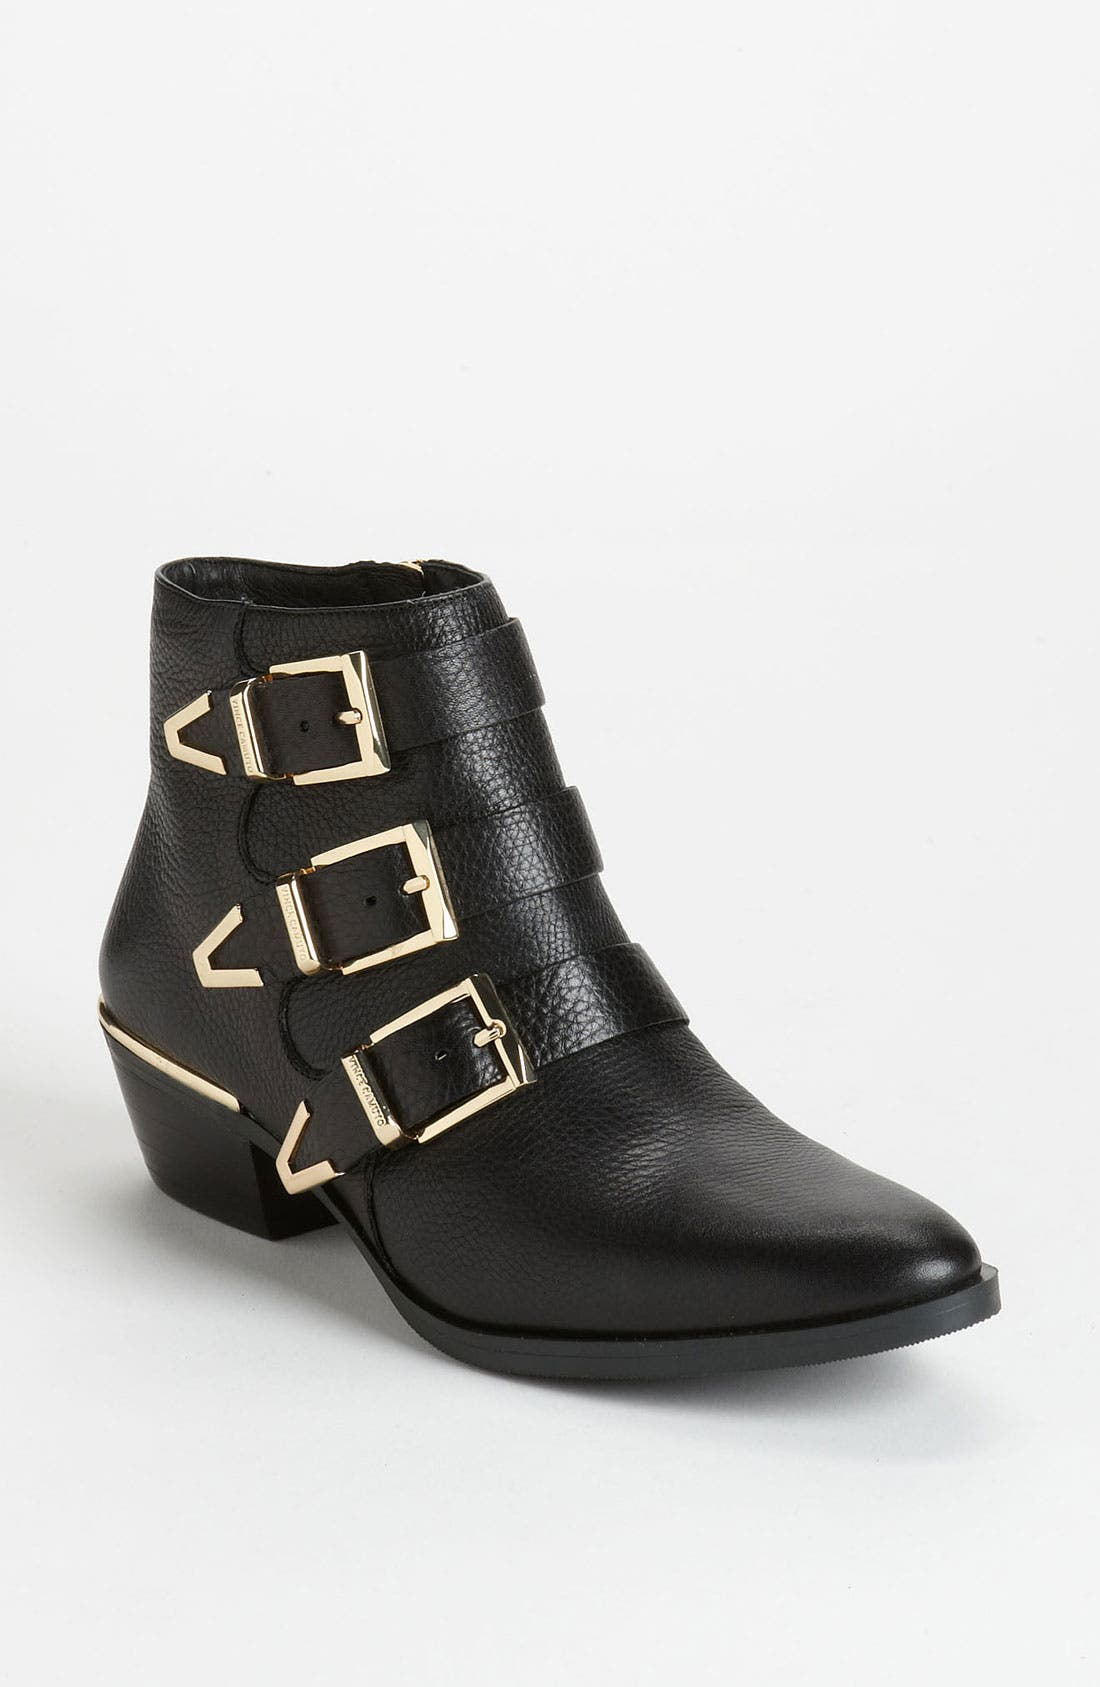 VINCE CAMUTO 'Tipper' Boot, Main, color, 002